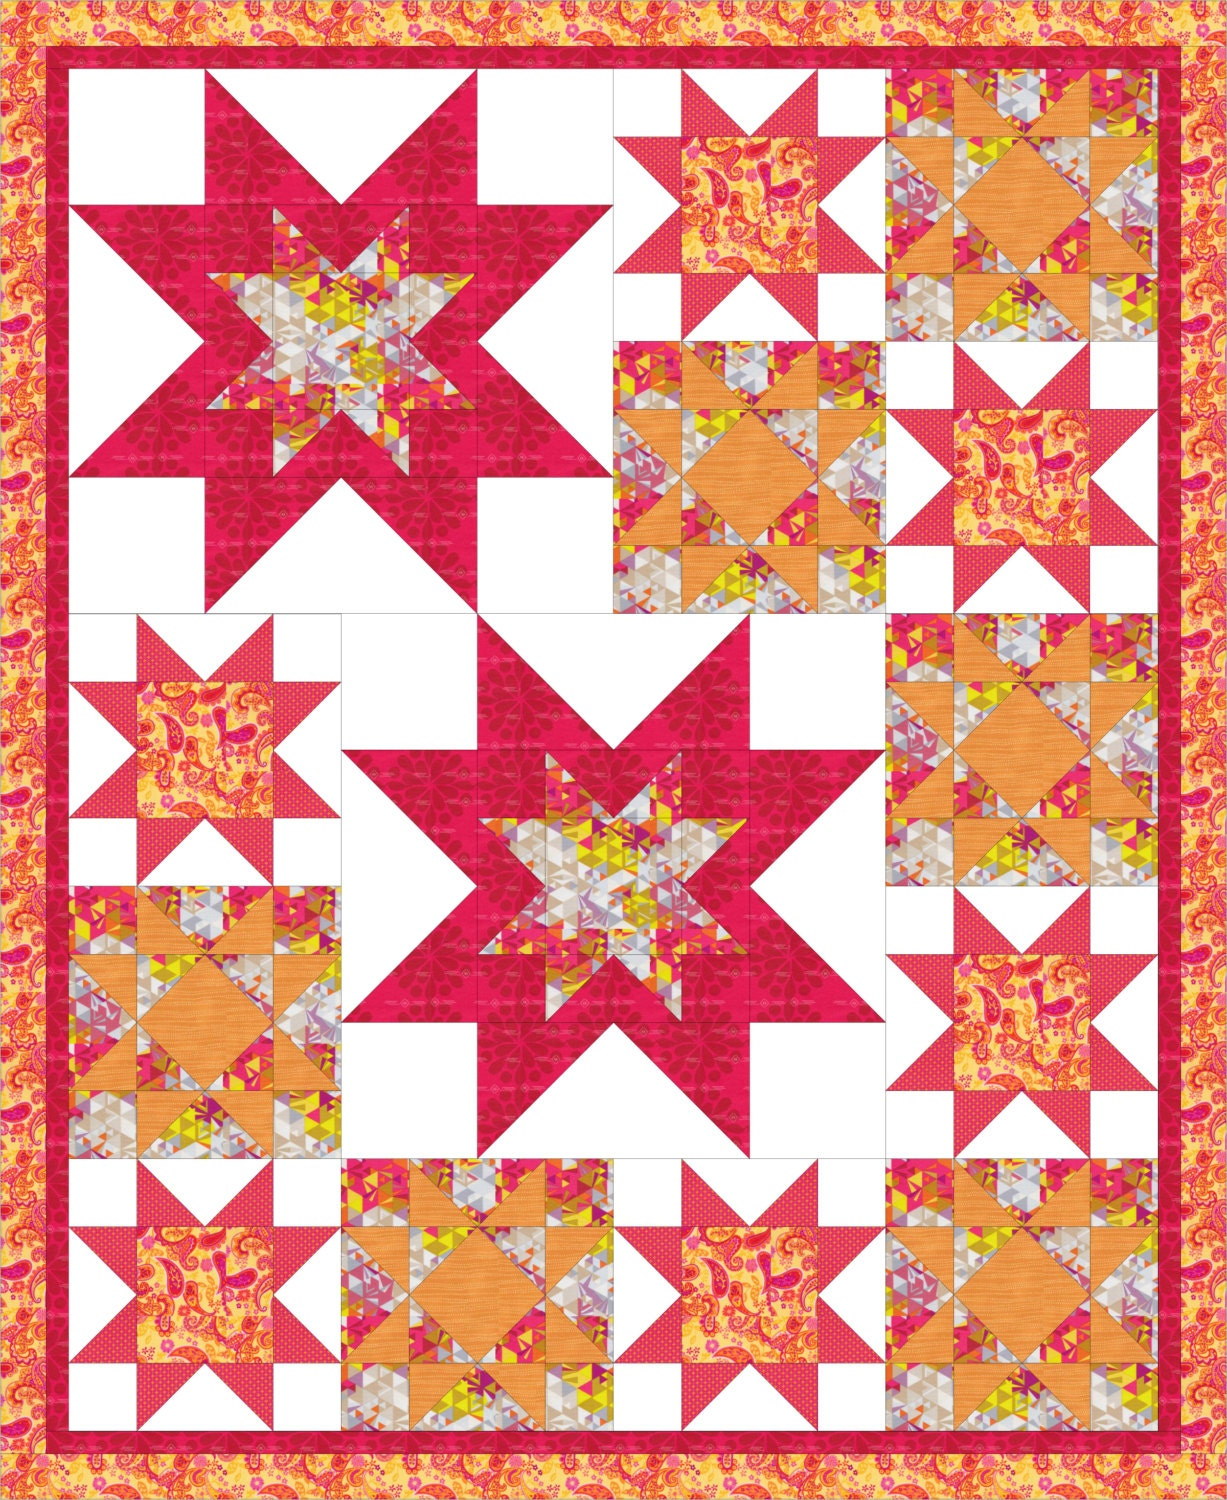 Modern Quilt Patterns Free Download : Modern bold throw quilt PDF pattern All About The Stars